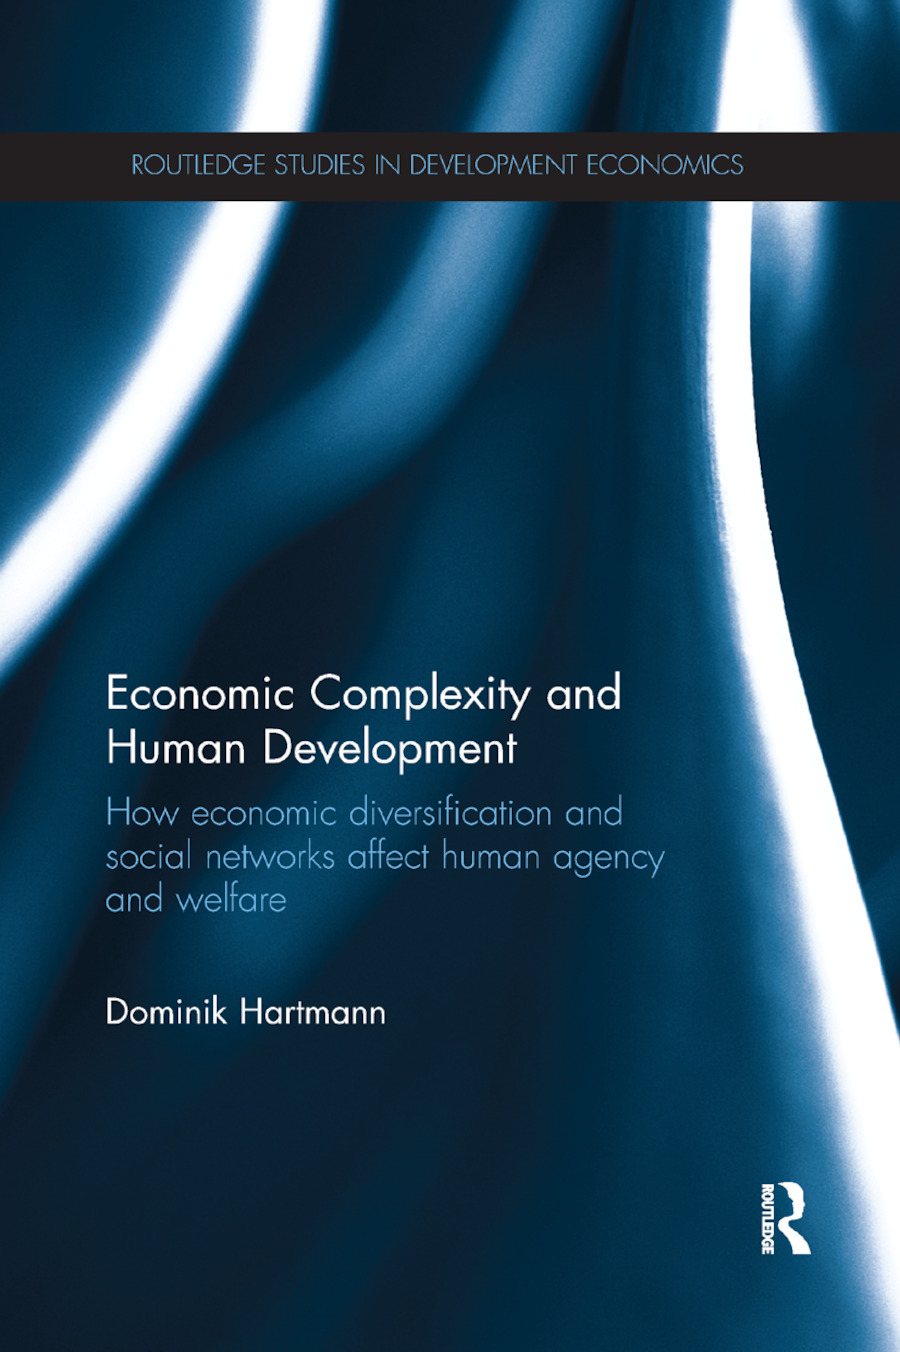 Economic Complexity and Human Development (Open Access): How Economic Diversification and Social Networks Affect Human Agency and Welfare book cover